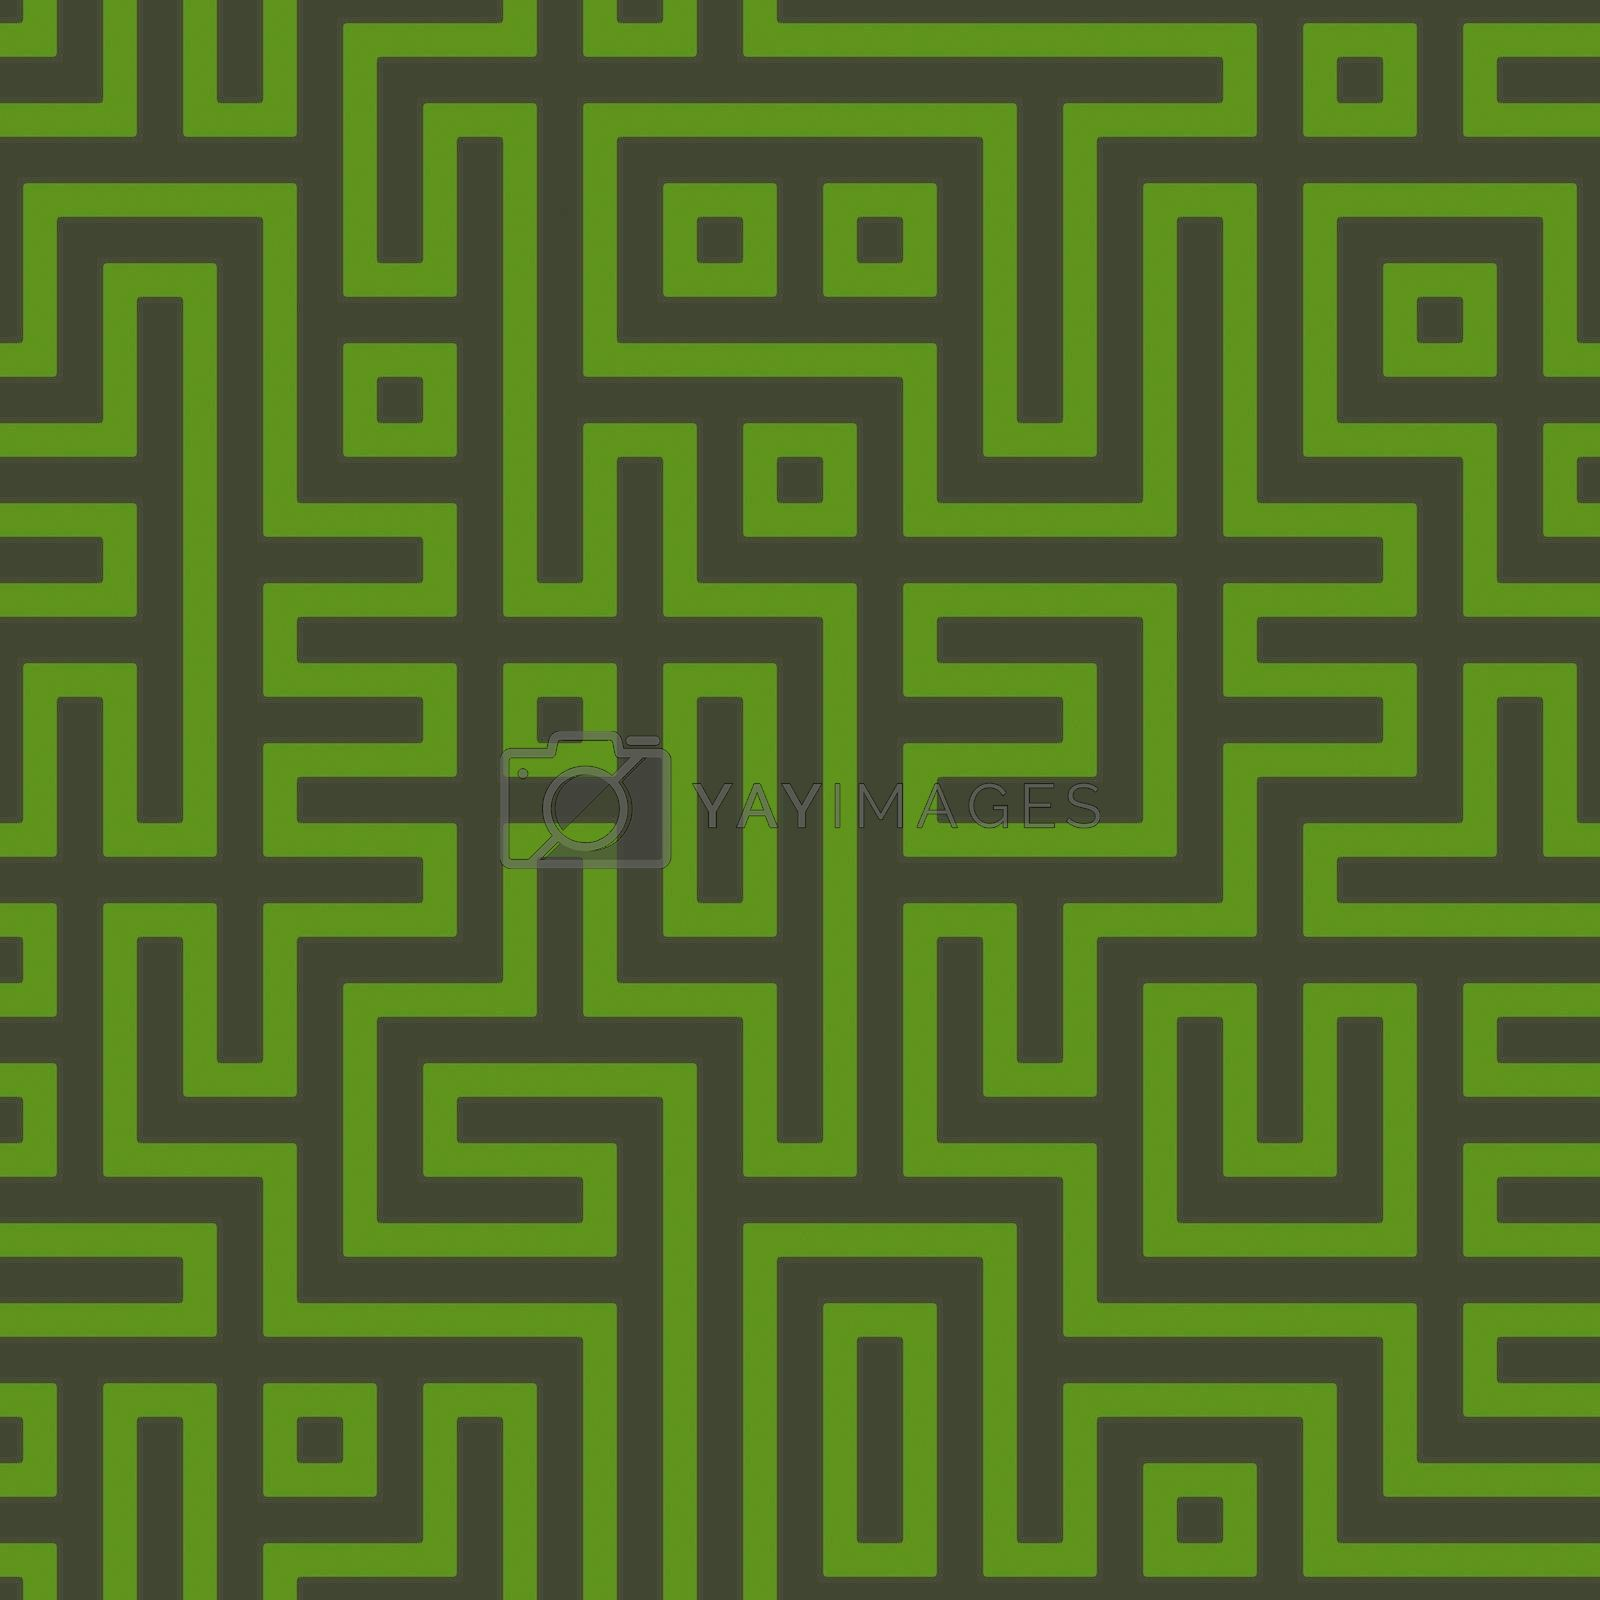 Abstract geometric maze background by kgtoh